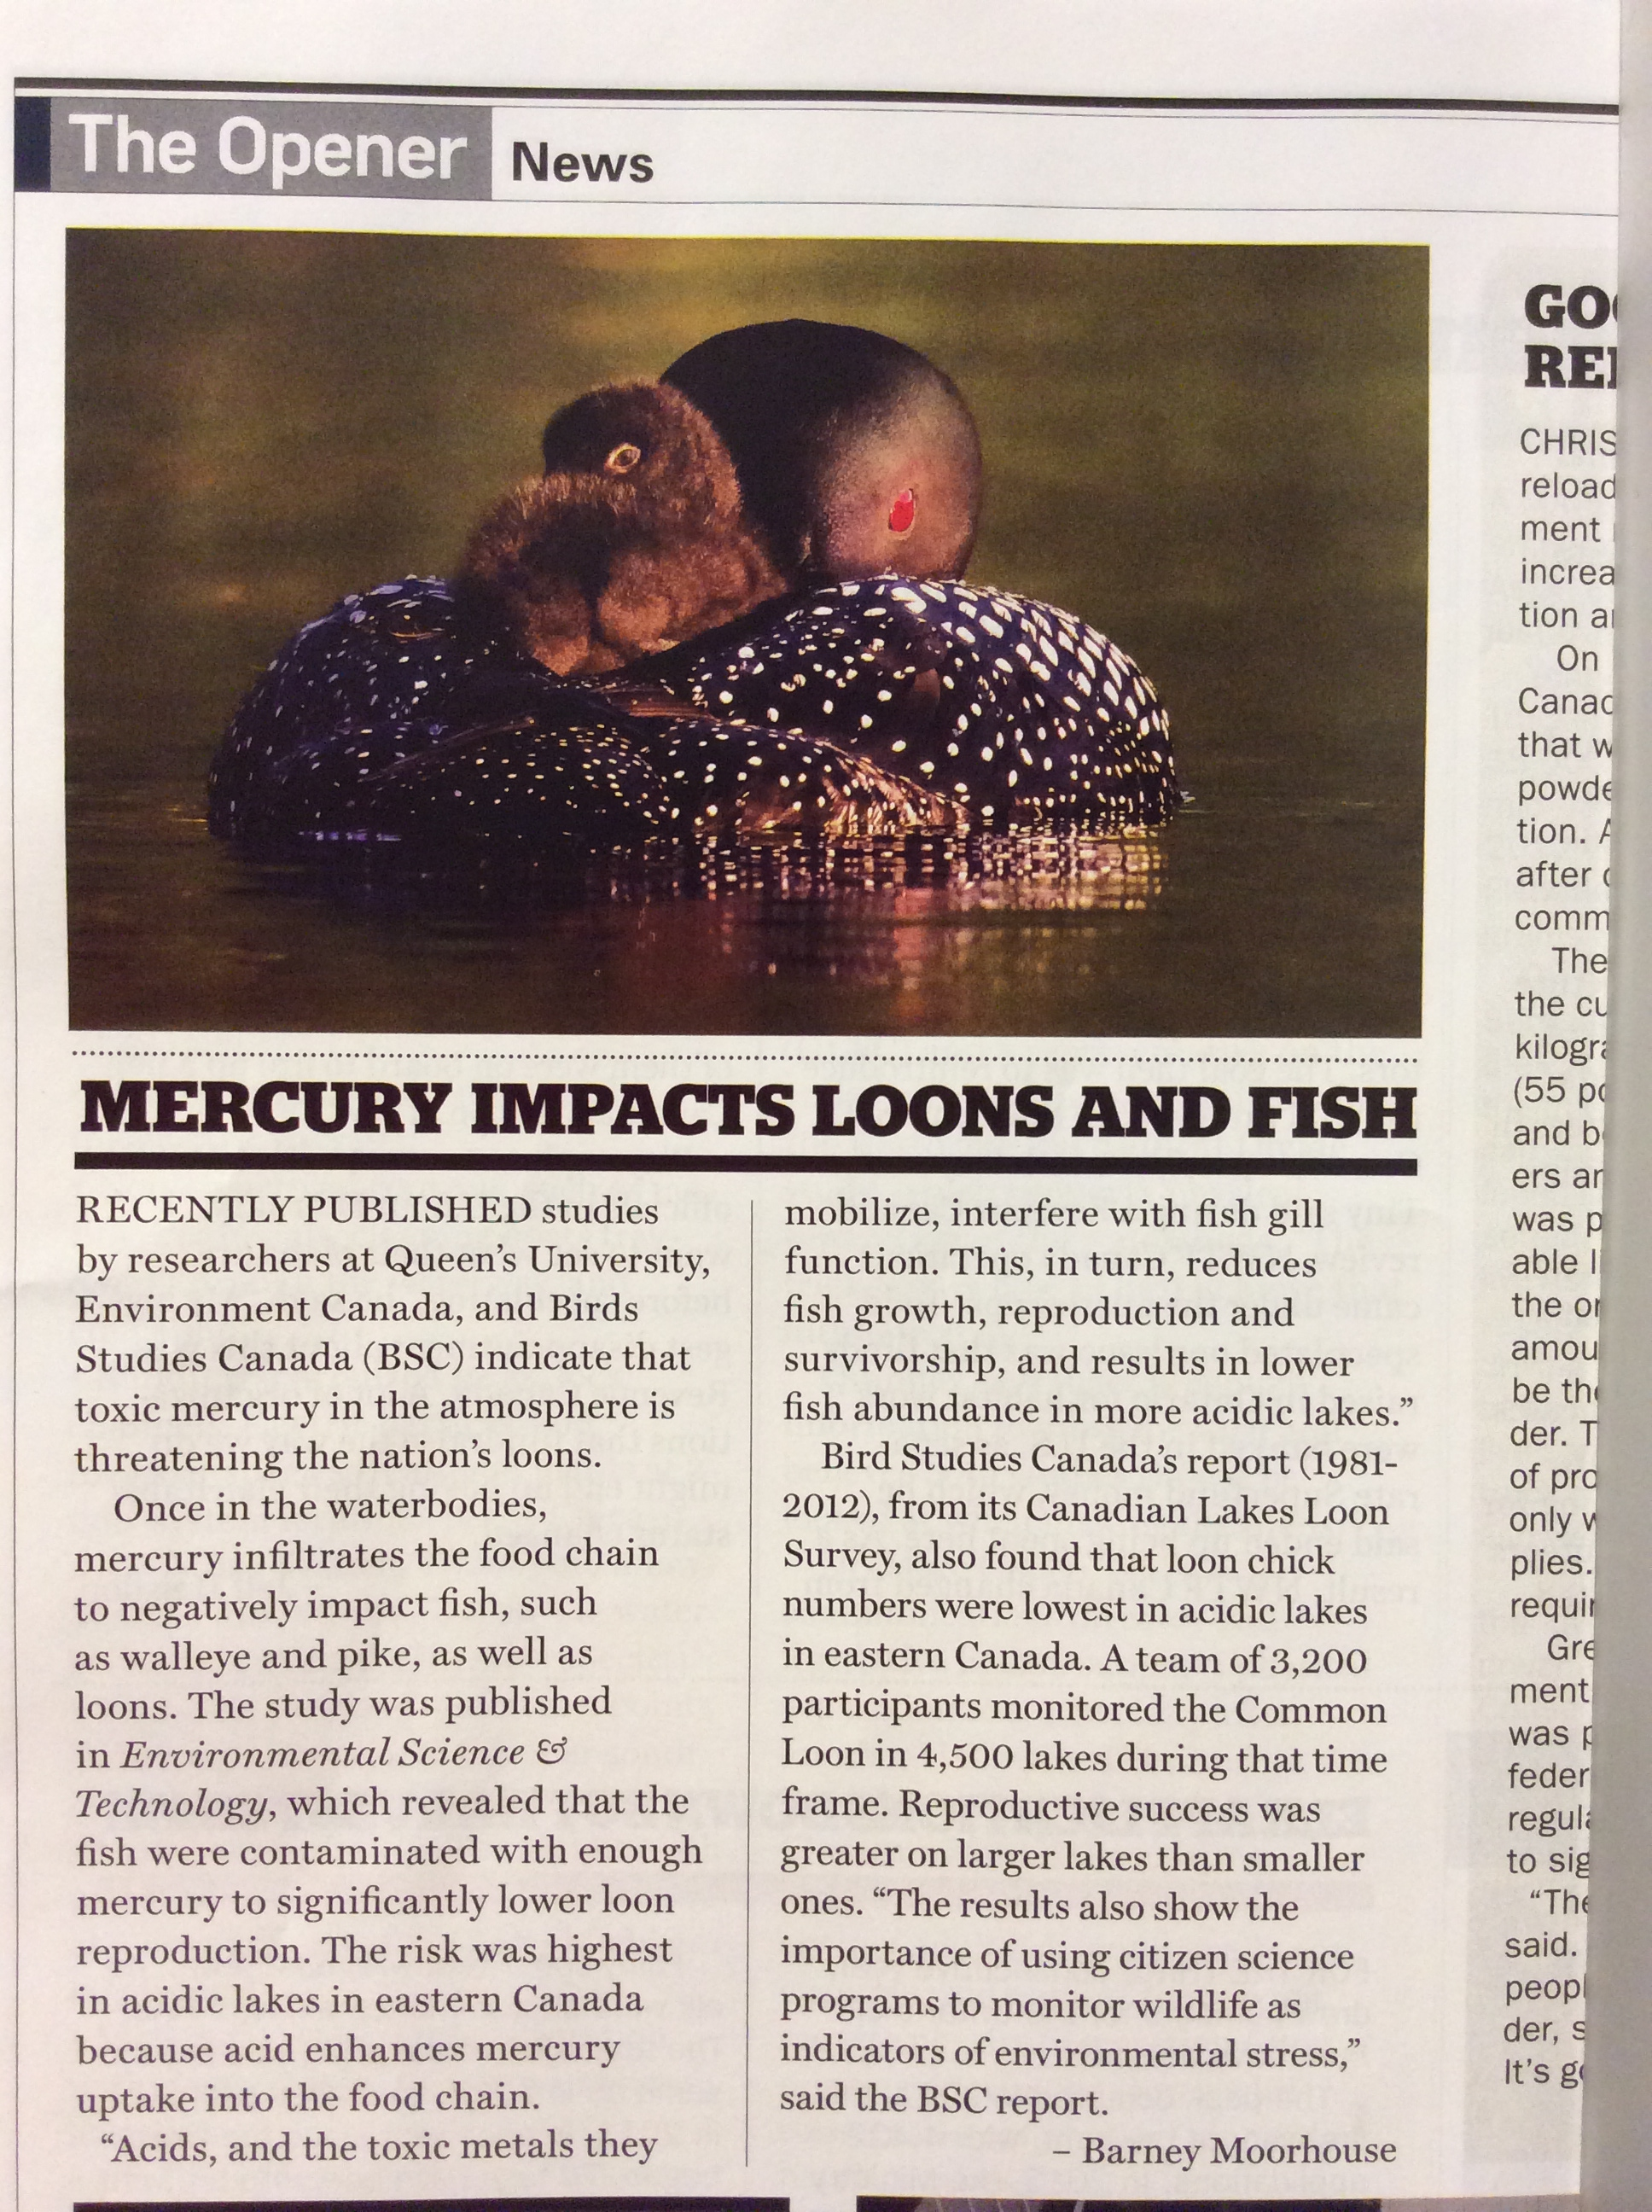 Freshwater fish mercury -  This Magazine Goes To All Ontario Federation Of Anglers And Hunters Members